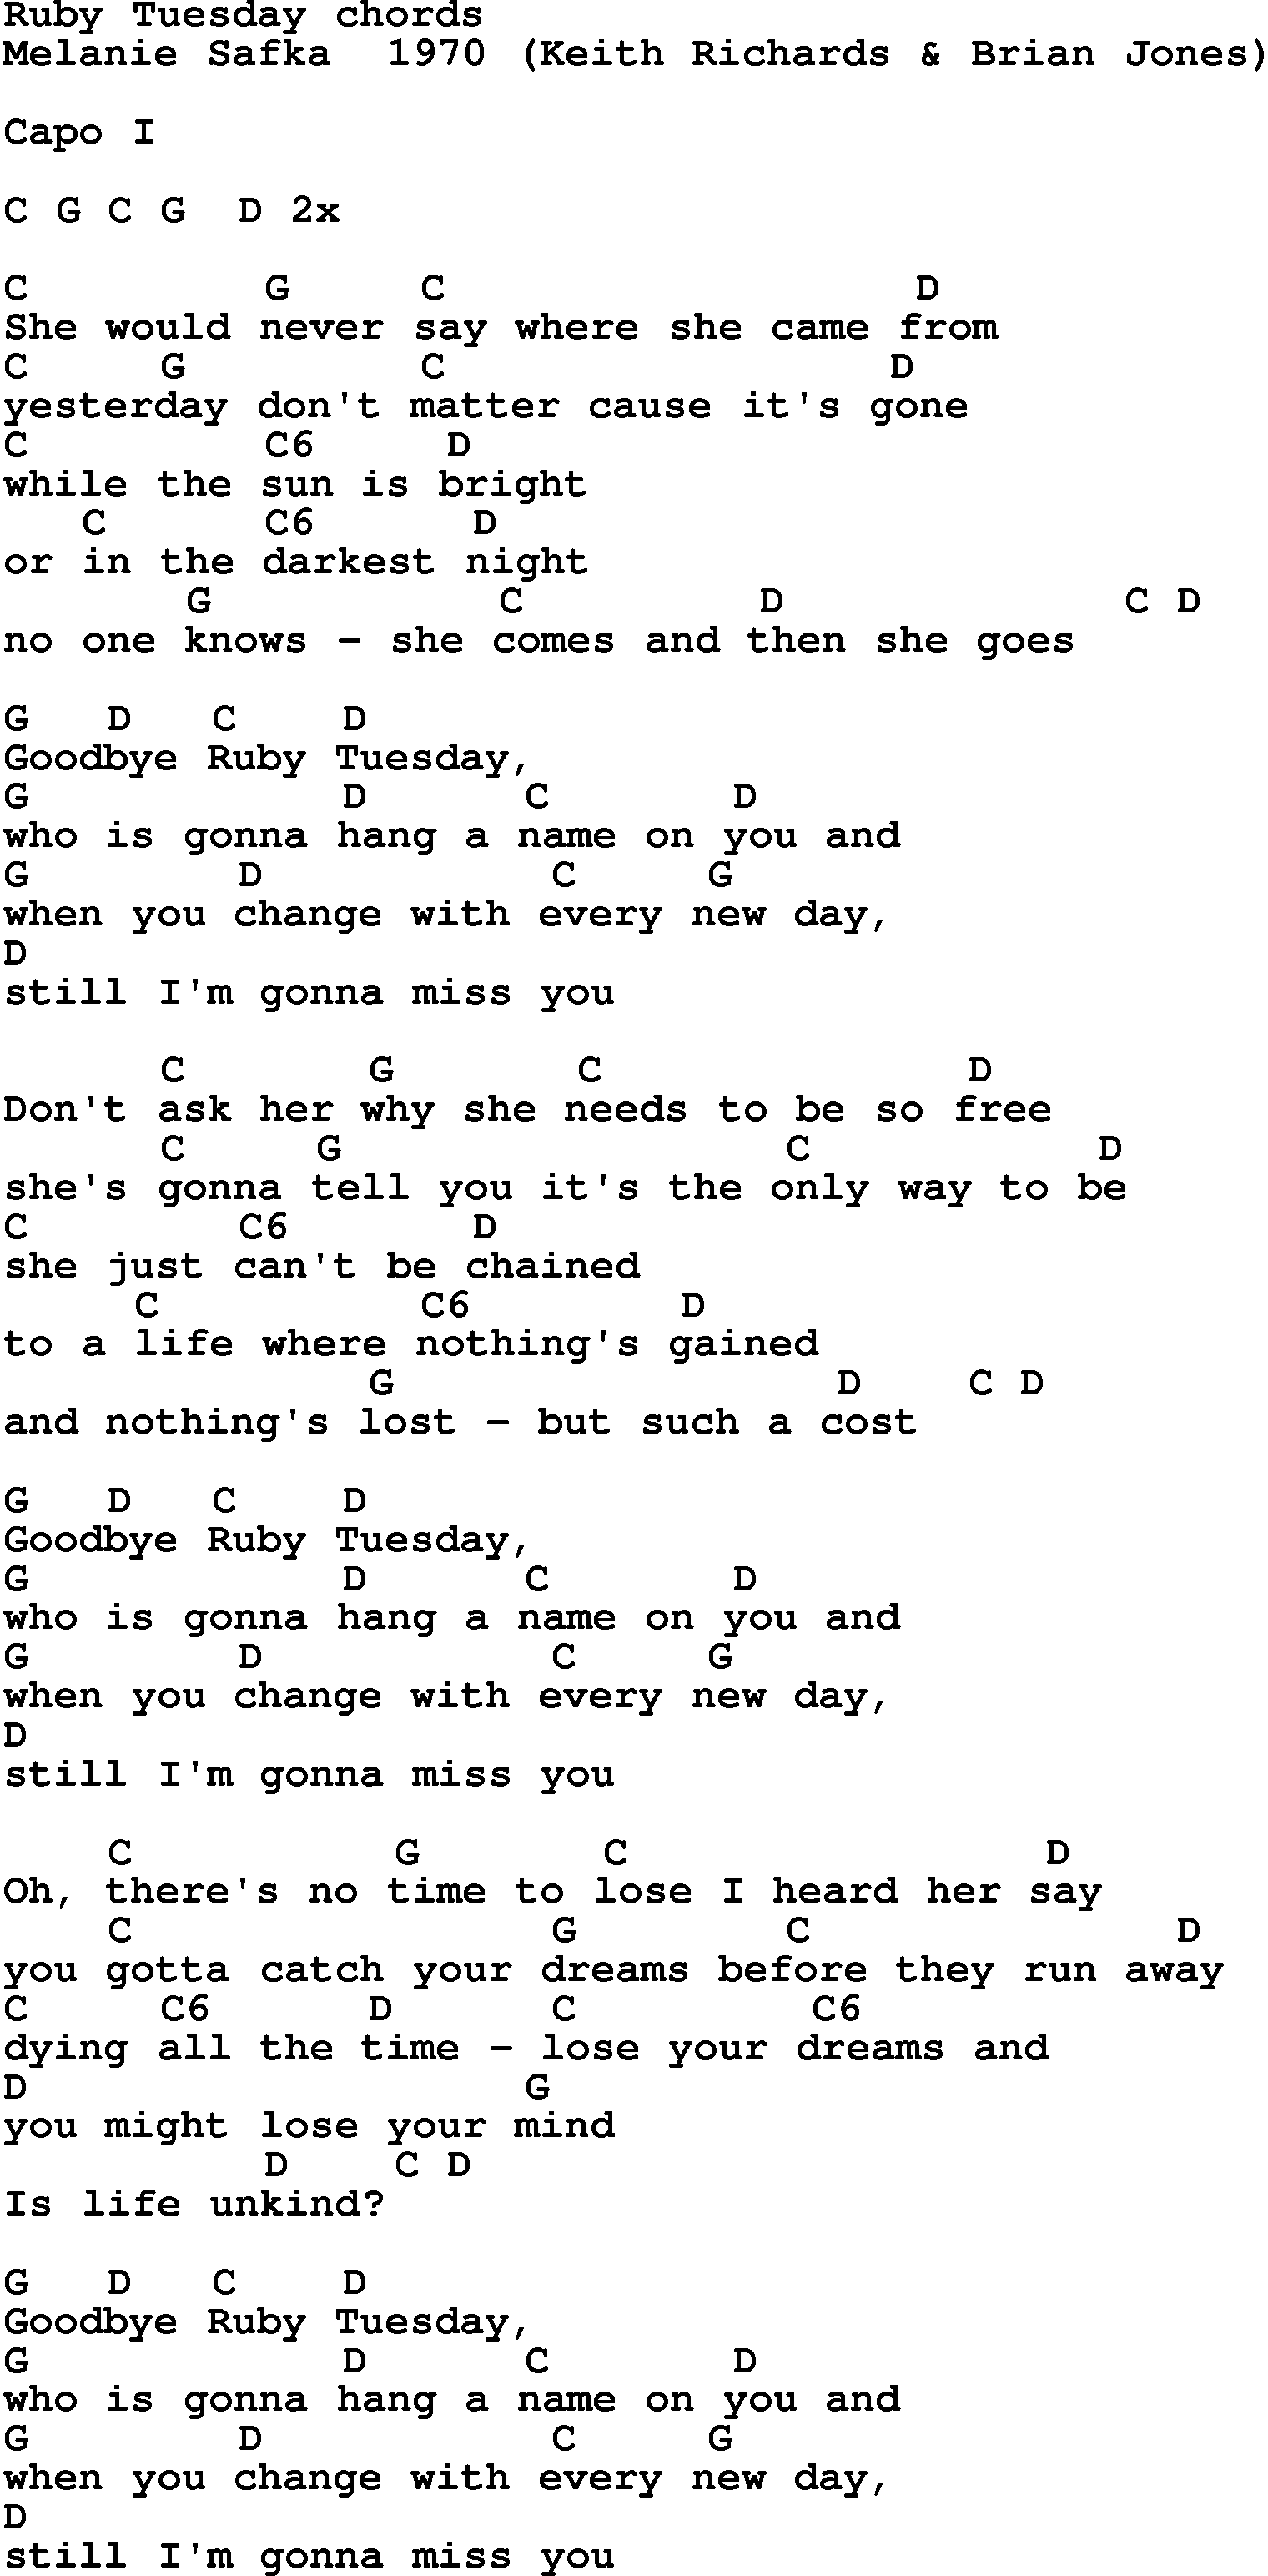 Song Lyrics With Guitar Chords For Ruby Tuesday The Beatles